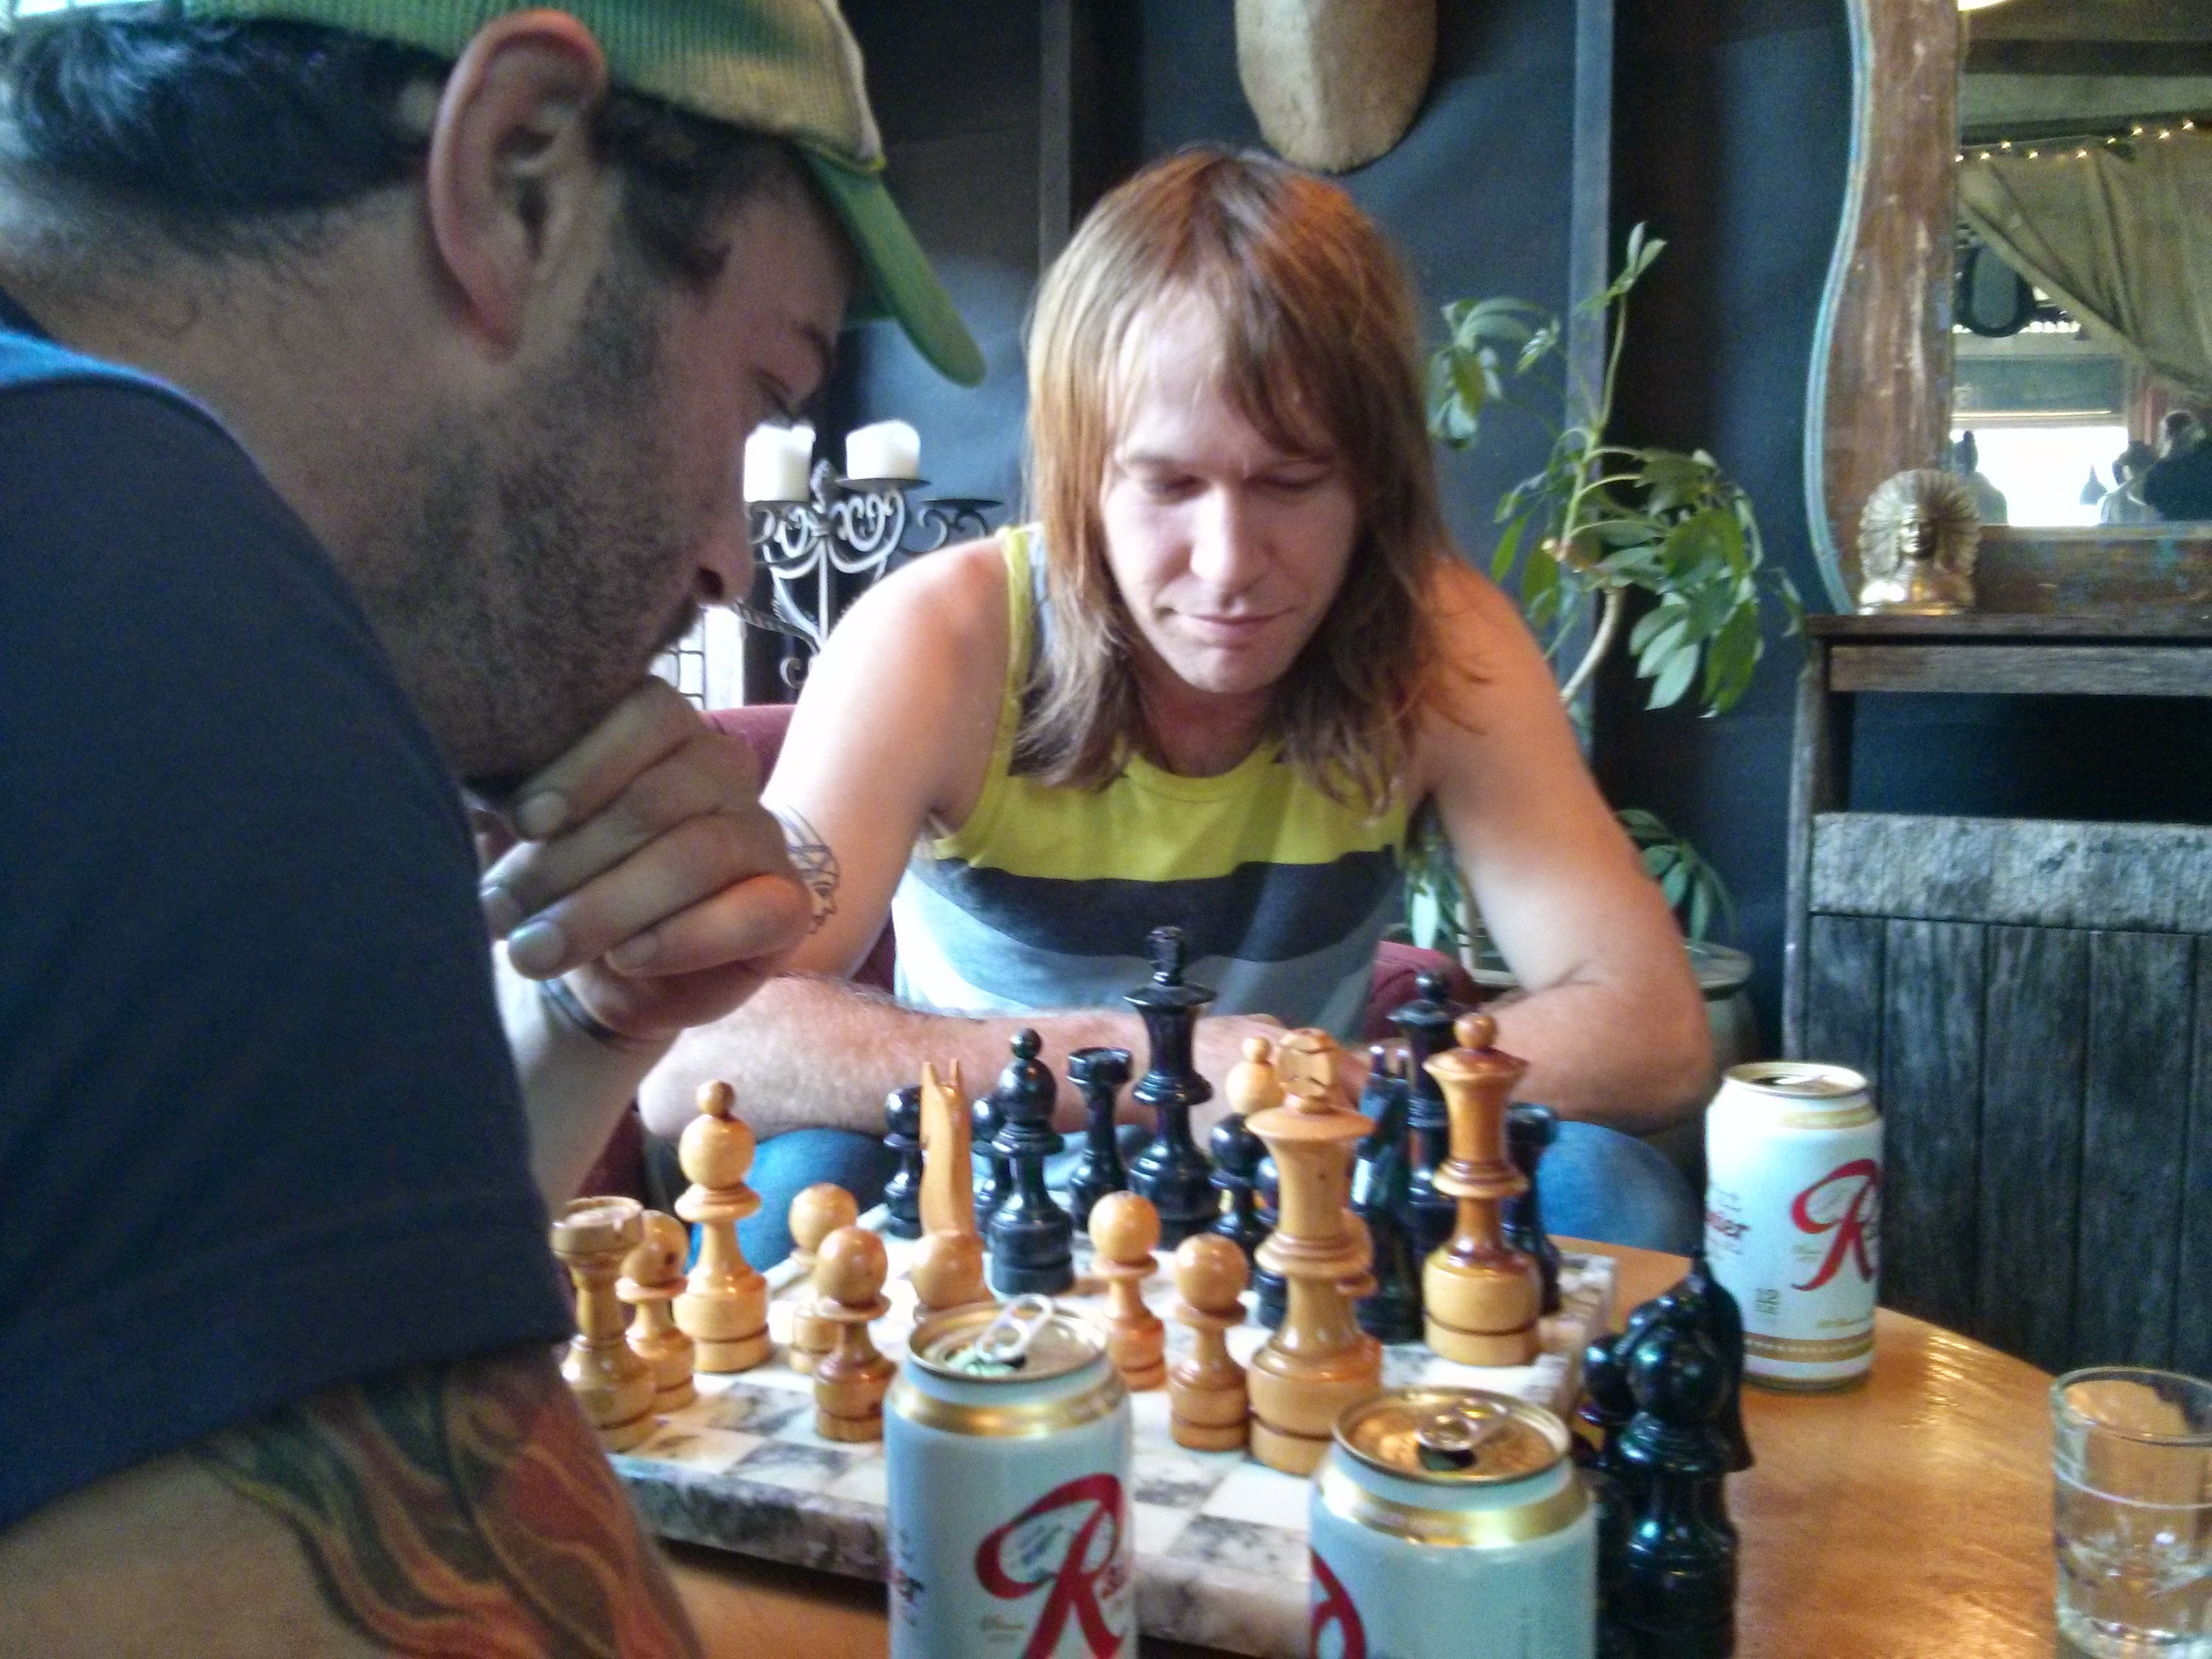 Annual B&B serious chess match